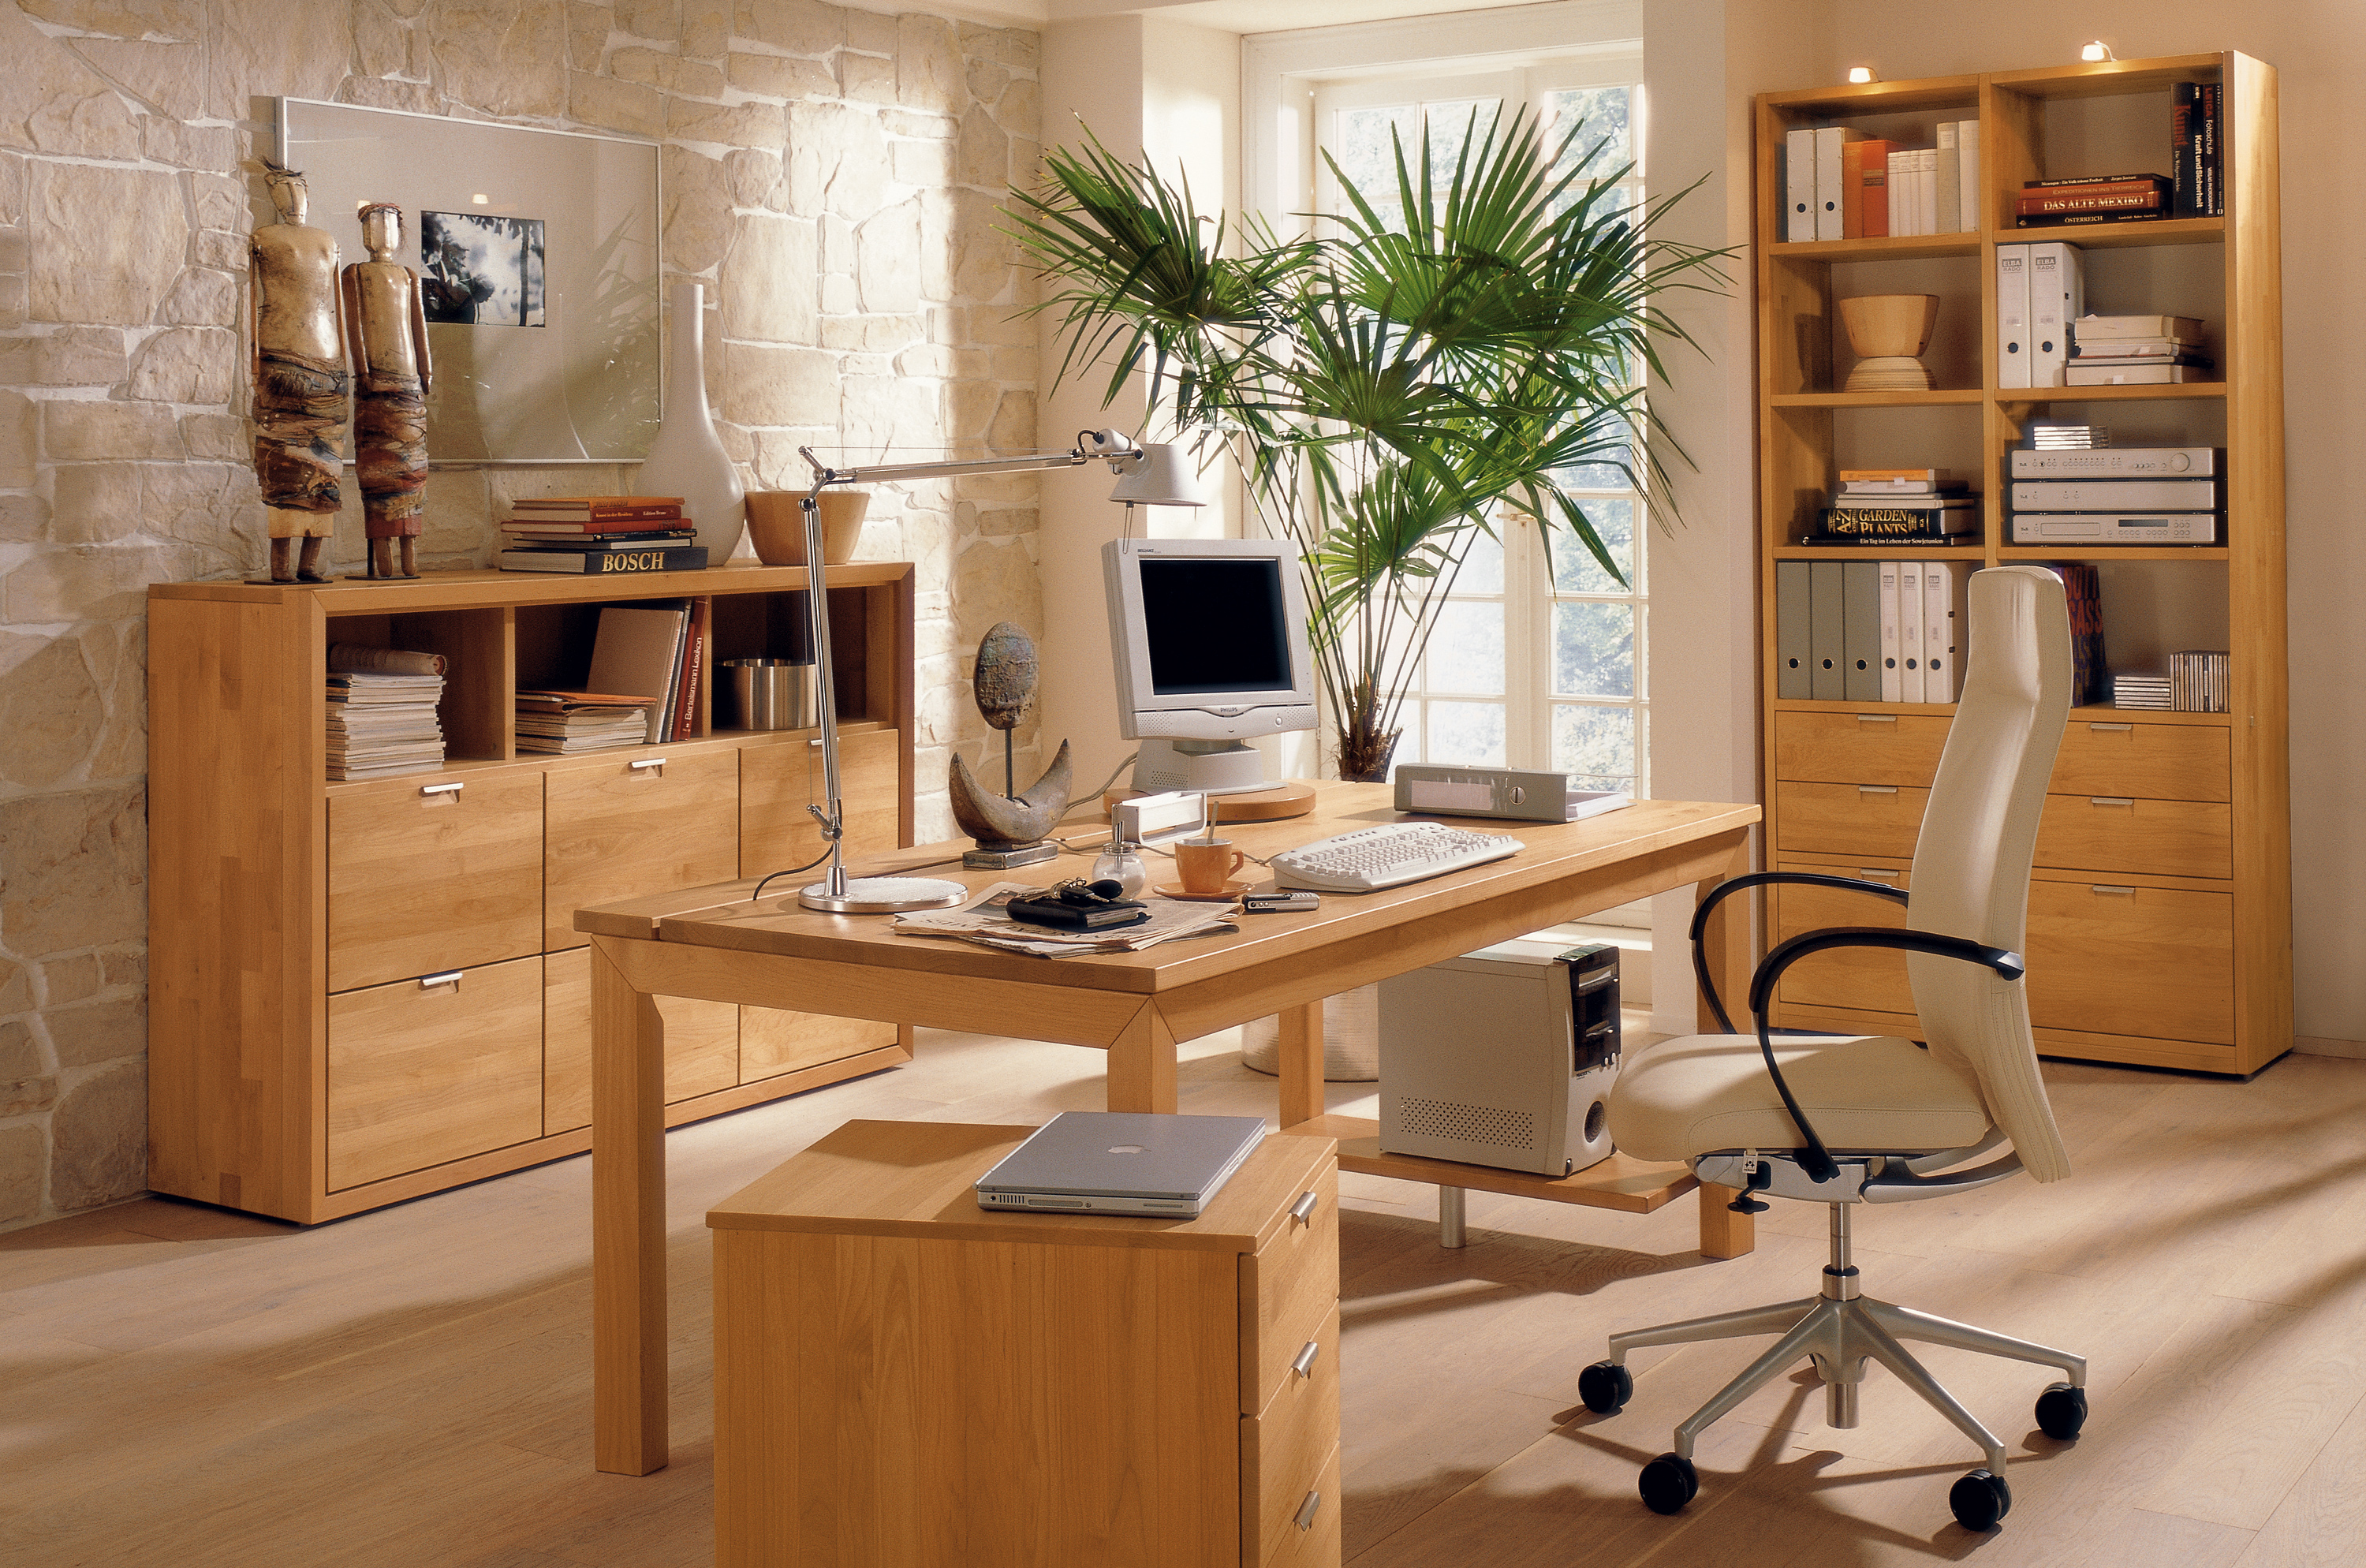 Home Office Design - Home Offices!